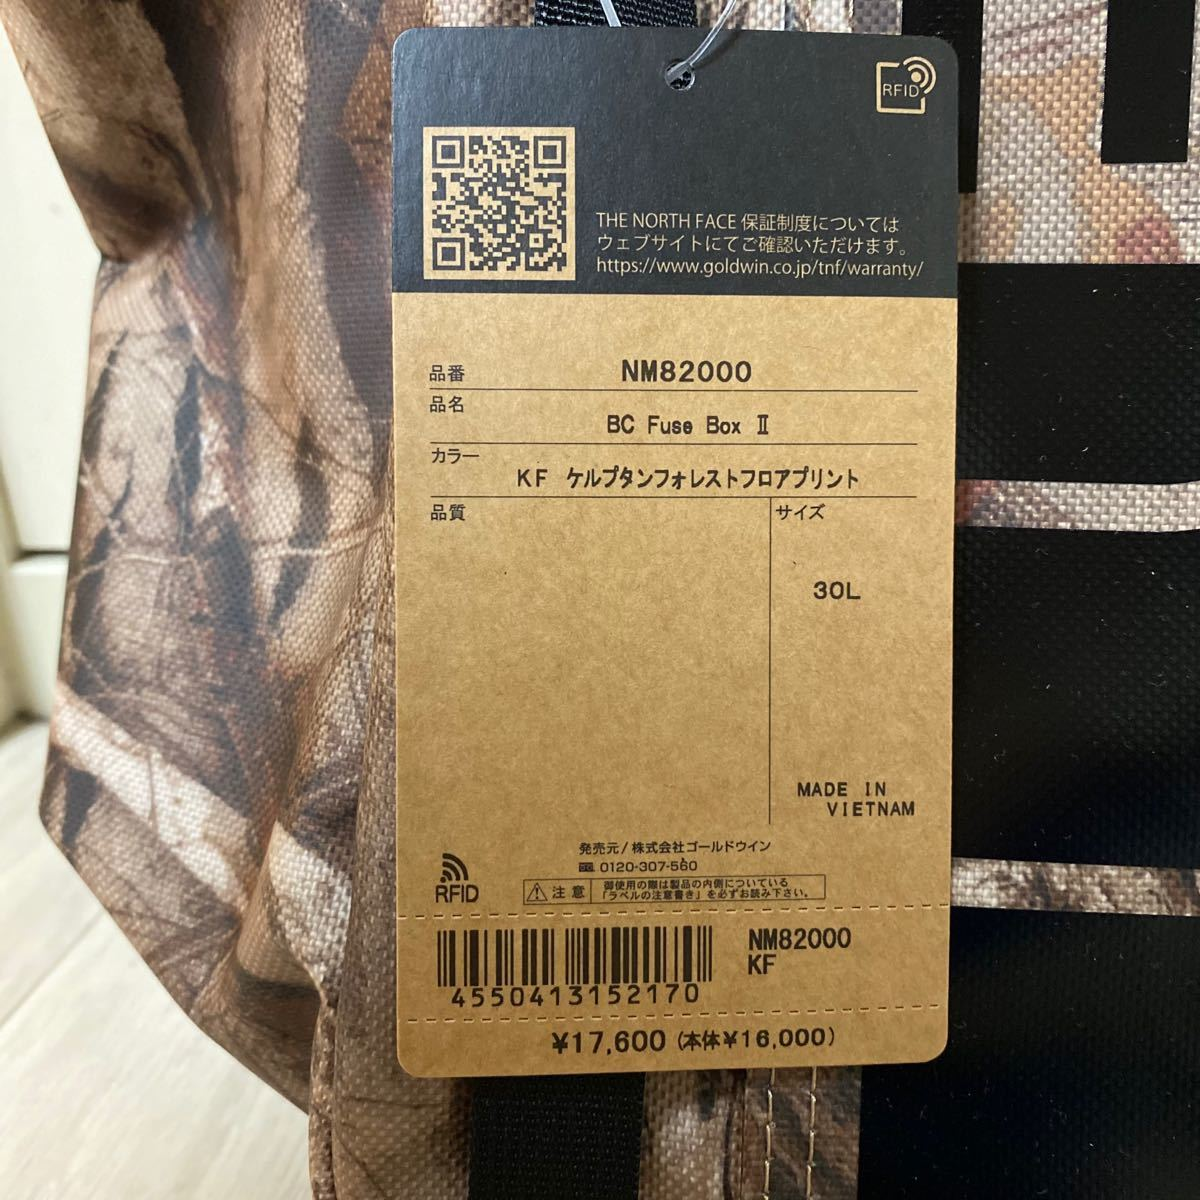 THE NORTH FACE ヒューズボックス BCヒューズボックス ノースフェイスヒューズボックス